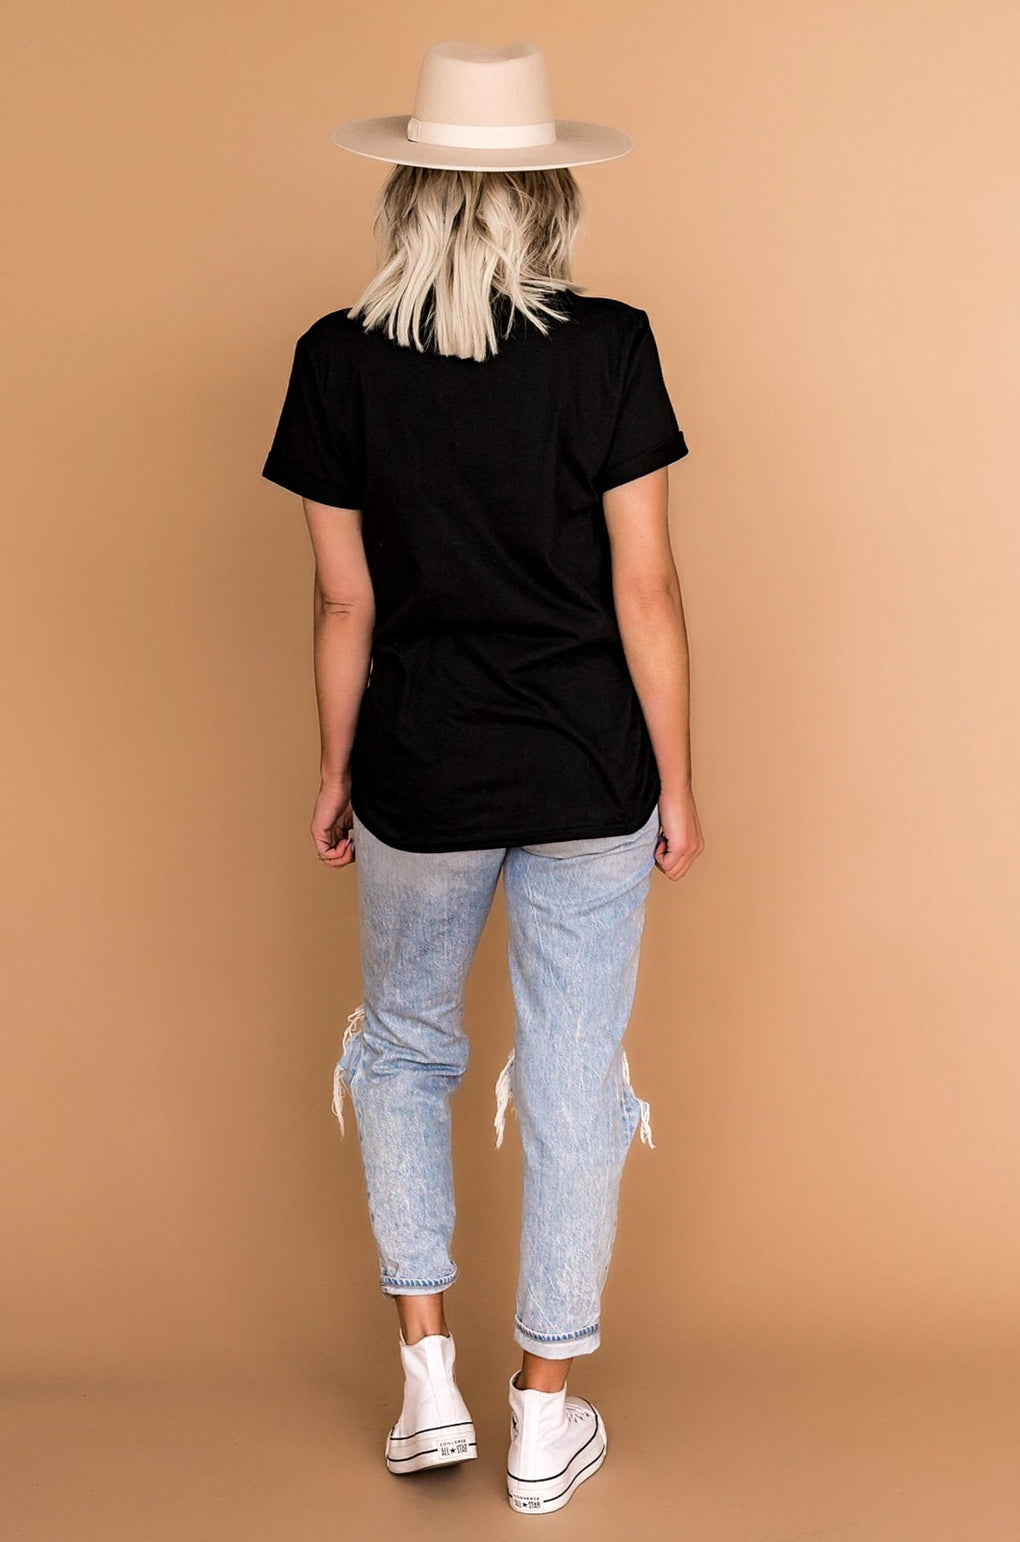 LALA ORIGINAL DESIGN: Made For This Embroidered Tee